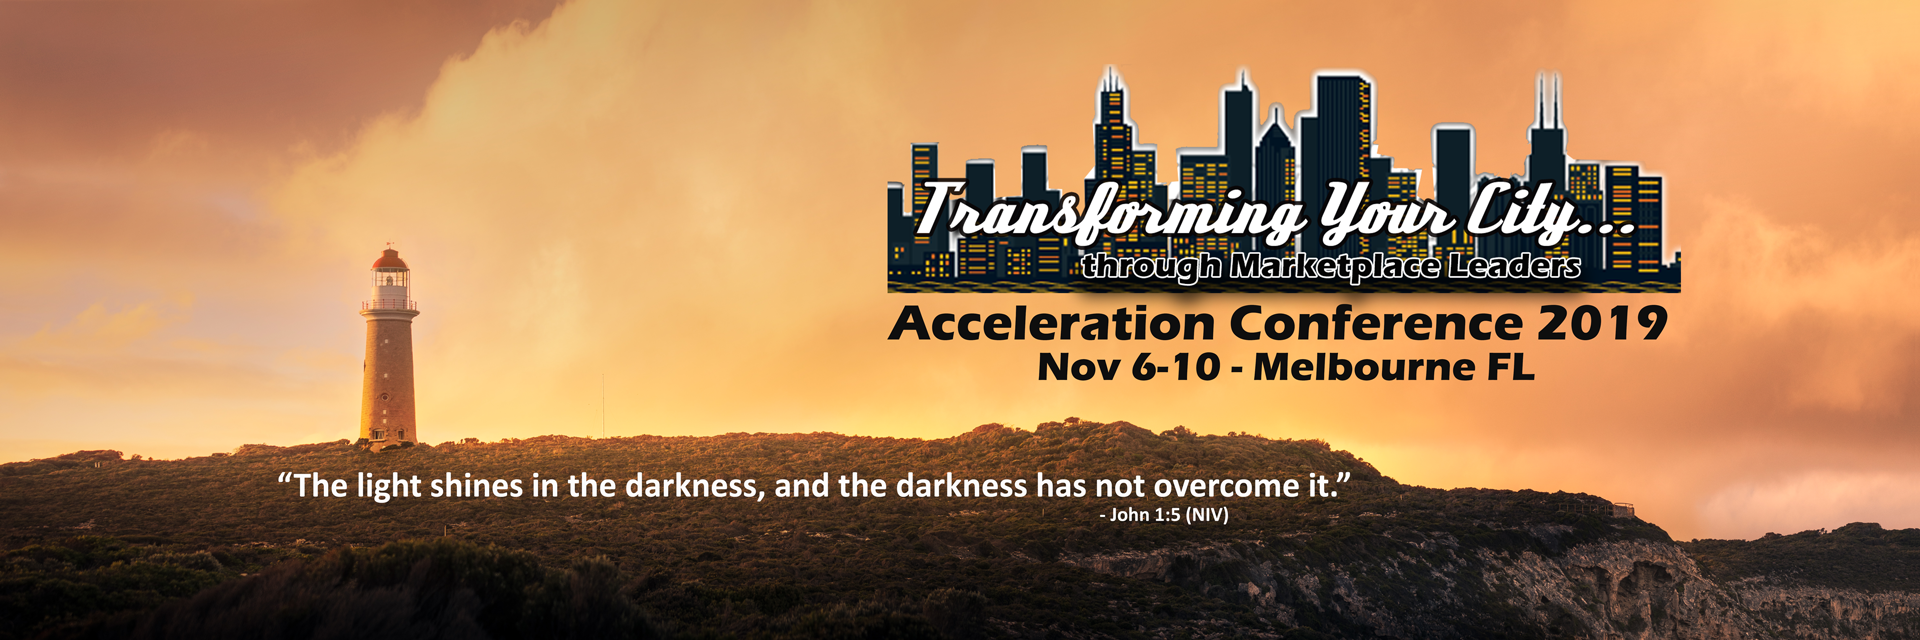 Transforming Your City Acceleration Conference 2019